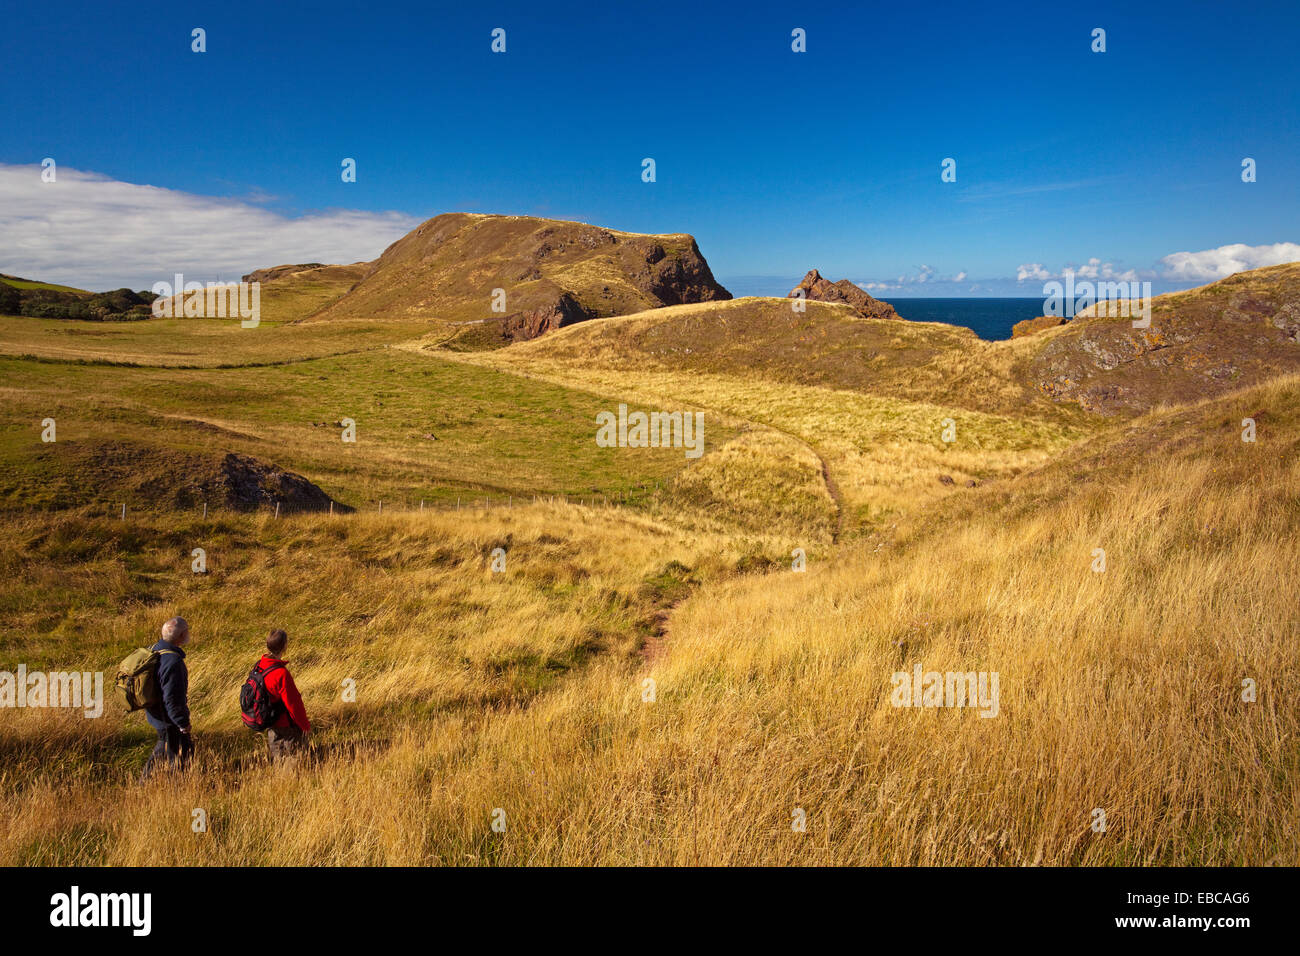 Walkers on a footpath at St Abbs Head - Stock Image